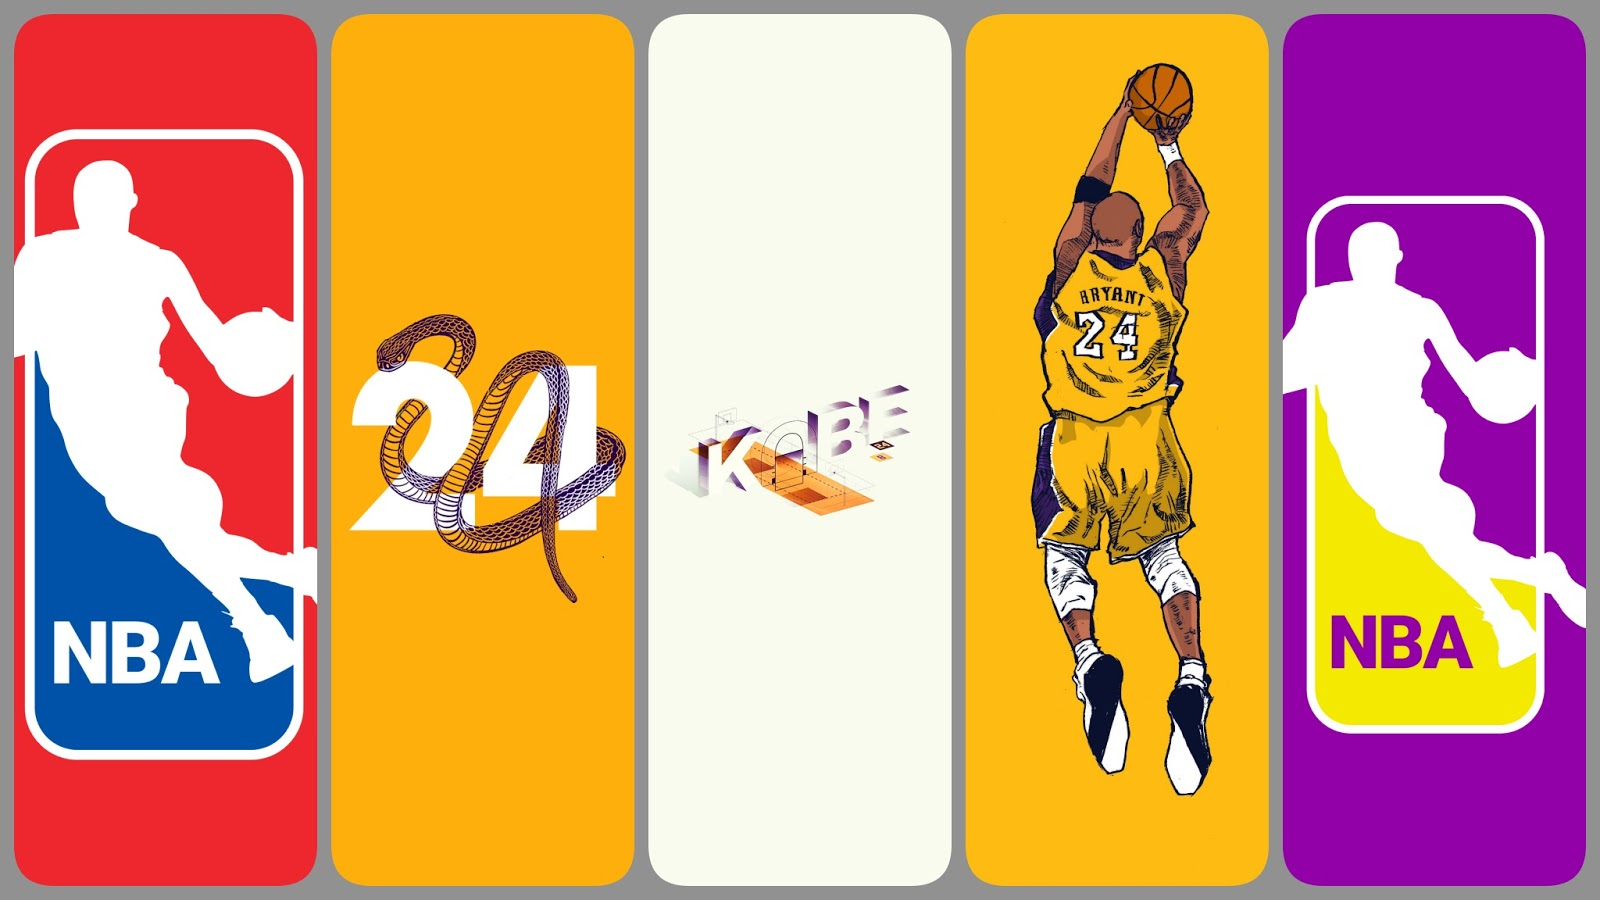 Kobe Bryant Cool Wallpapers for Phone